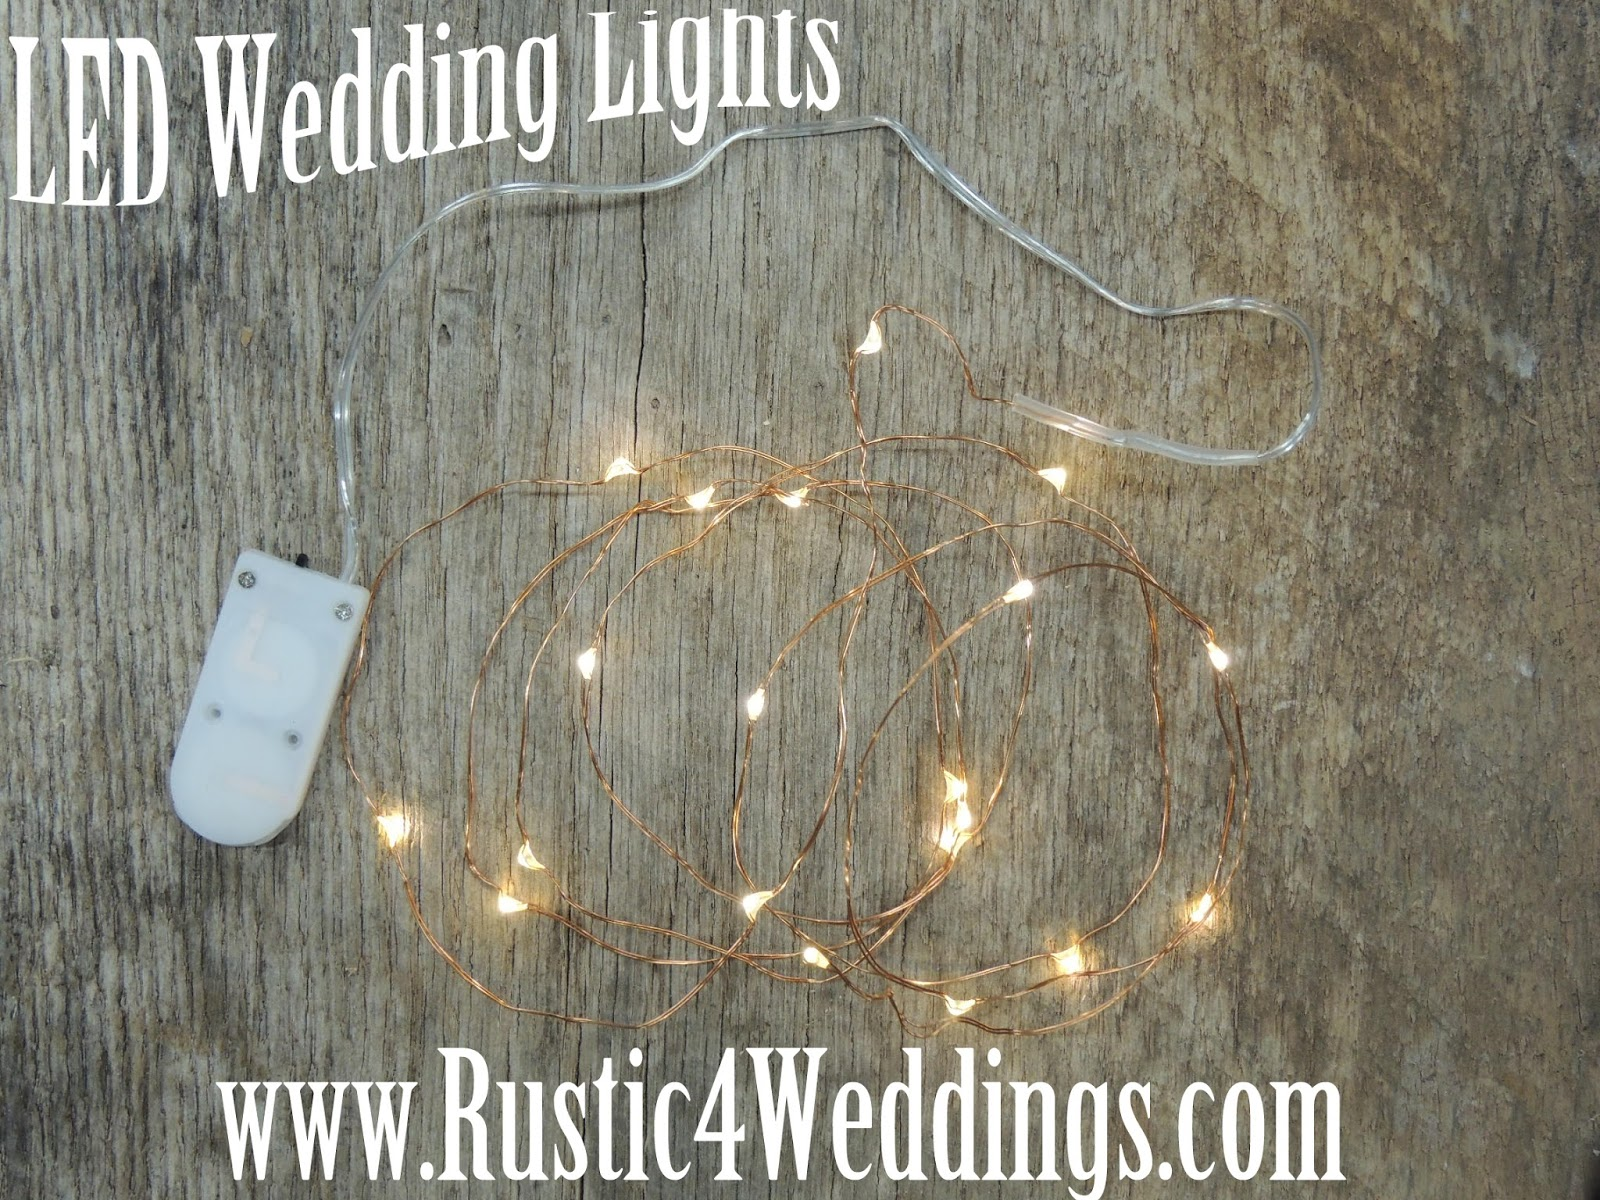 Rustic 4 Weddings: LED Fairy Lights- Battery Operated ...